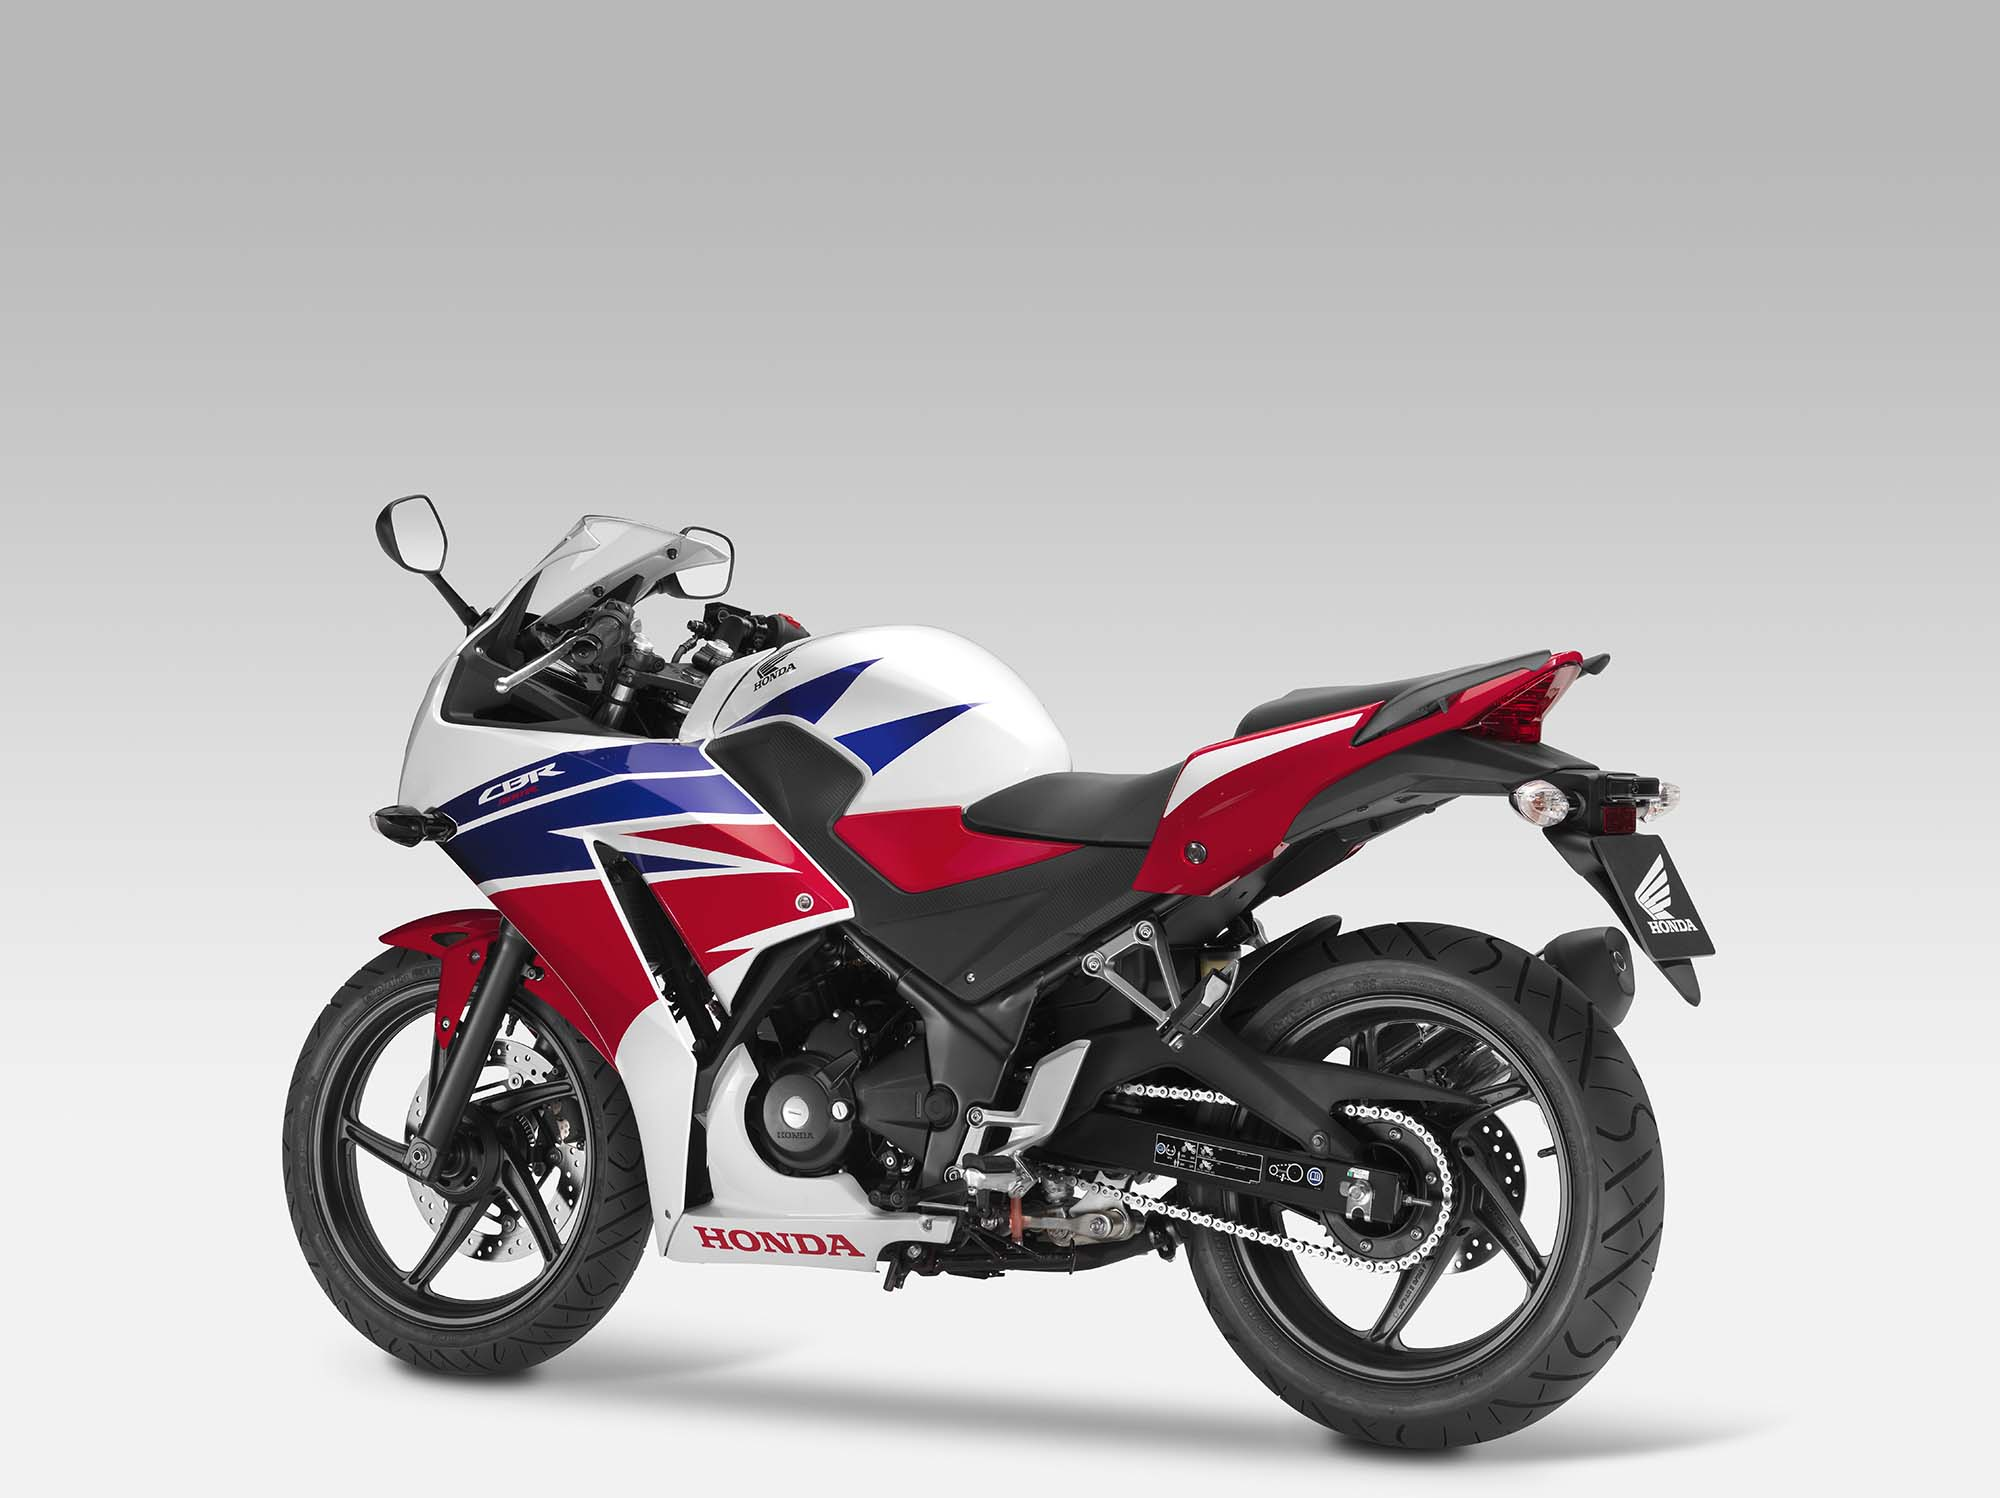 2015 Honda CBR 150R launched in Indonesia